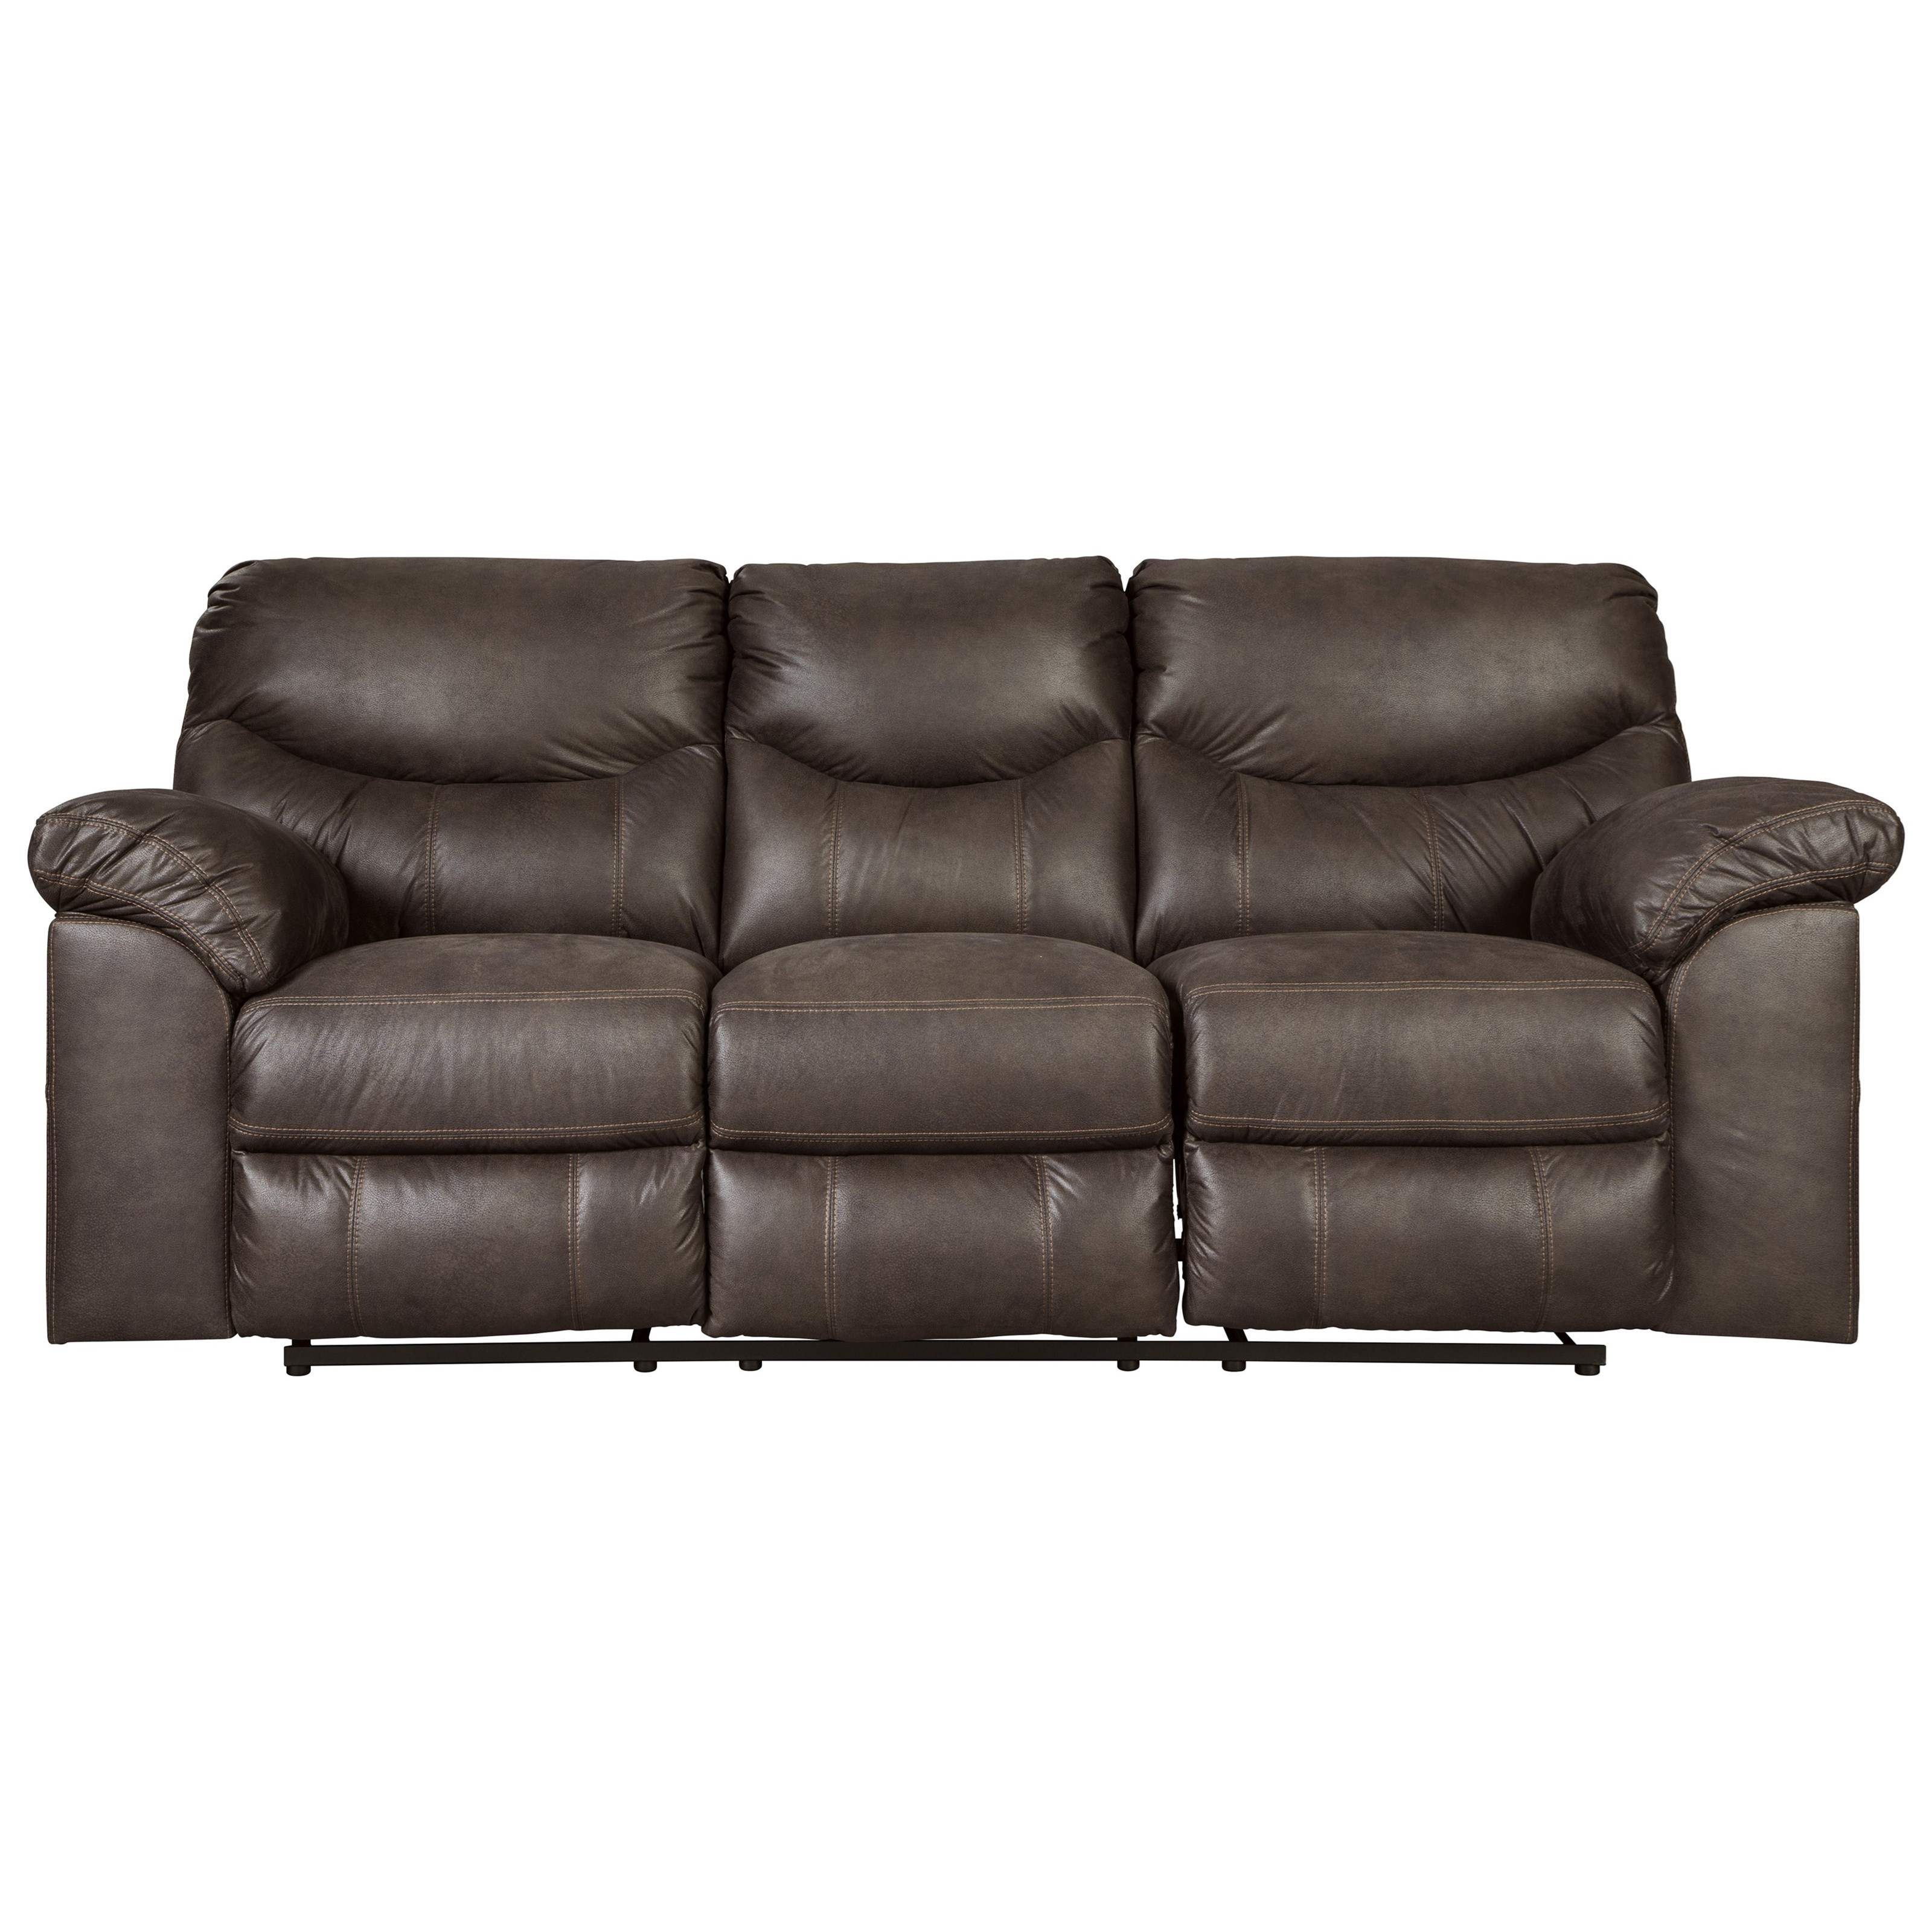 Recliner Pillow Boxberg Casual Reclining Sofa By Signature Design By Ashley At Vandrie Home Furnishings